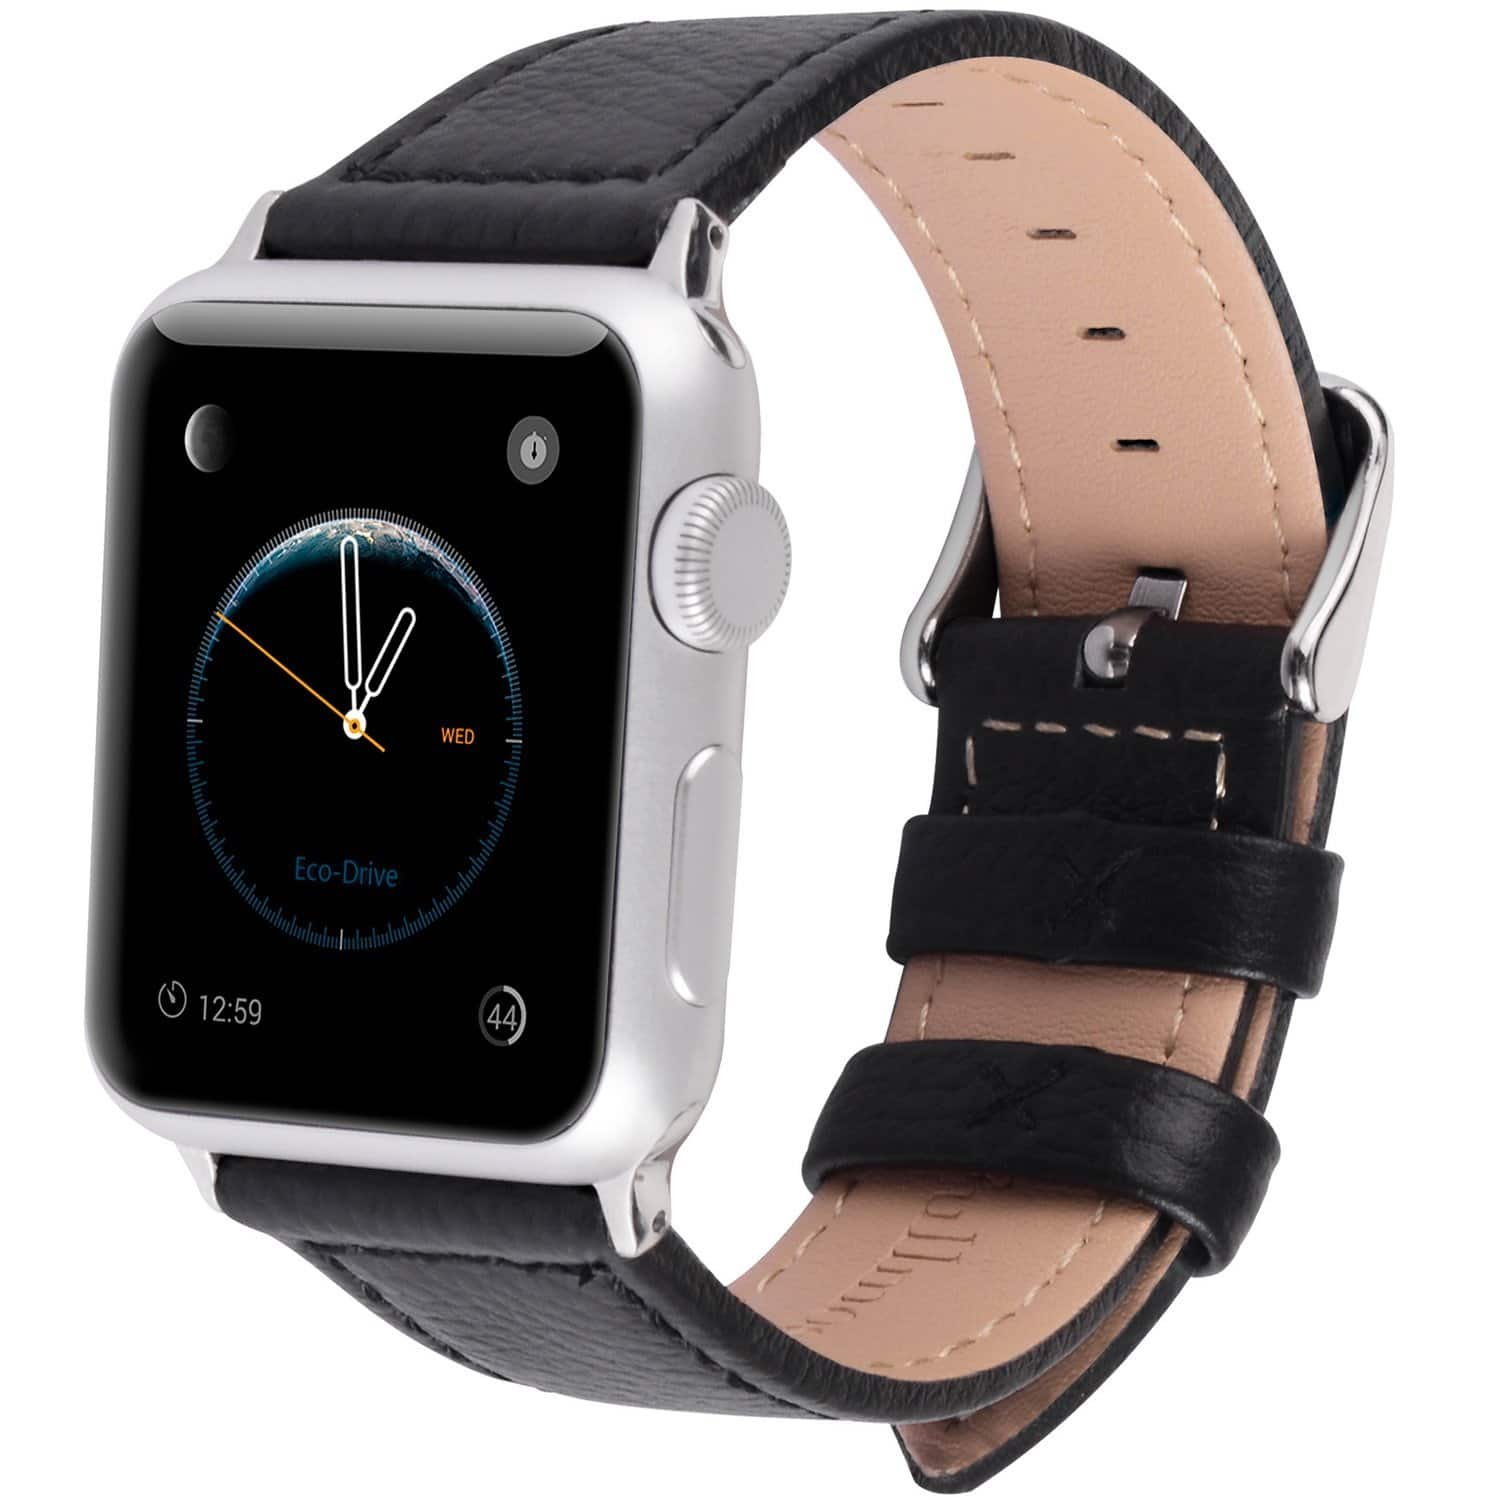 Leather Apple Watch Replacement Bands 38mm & 42 mm (5 Color Choices) 50% OFF = $7.99 @ Amazon